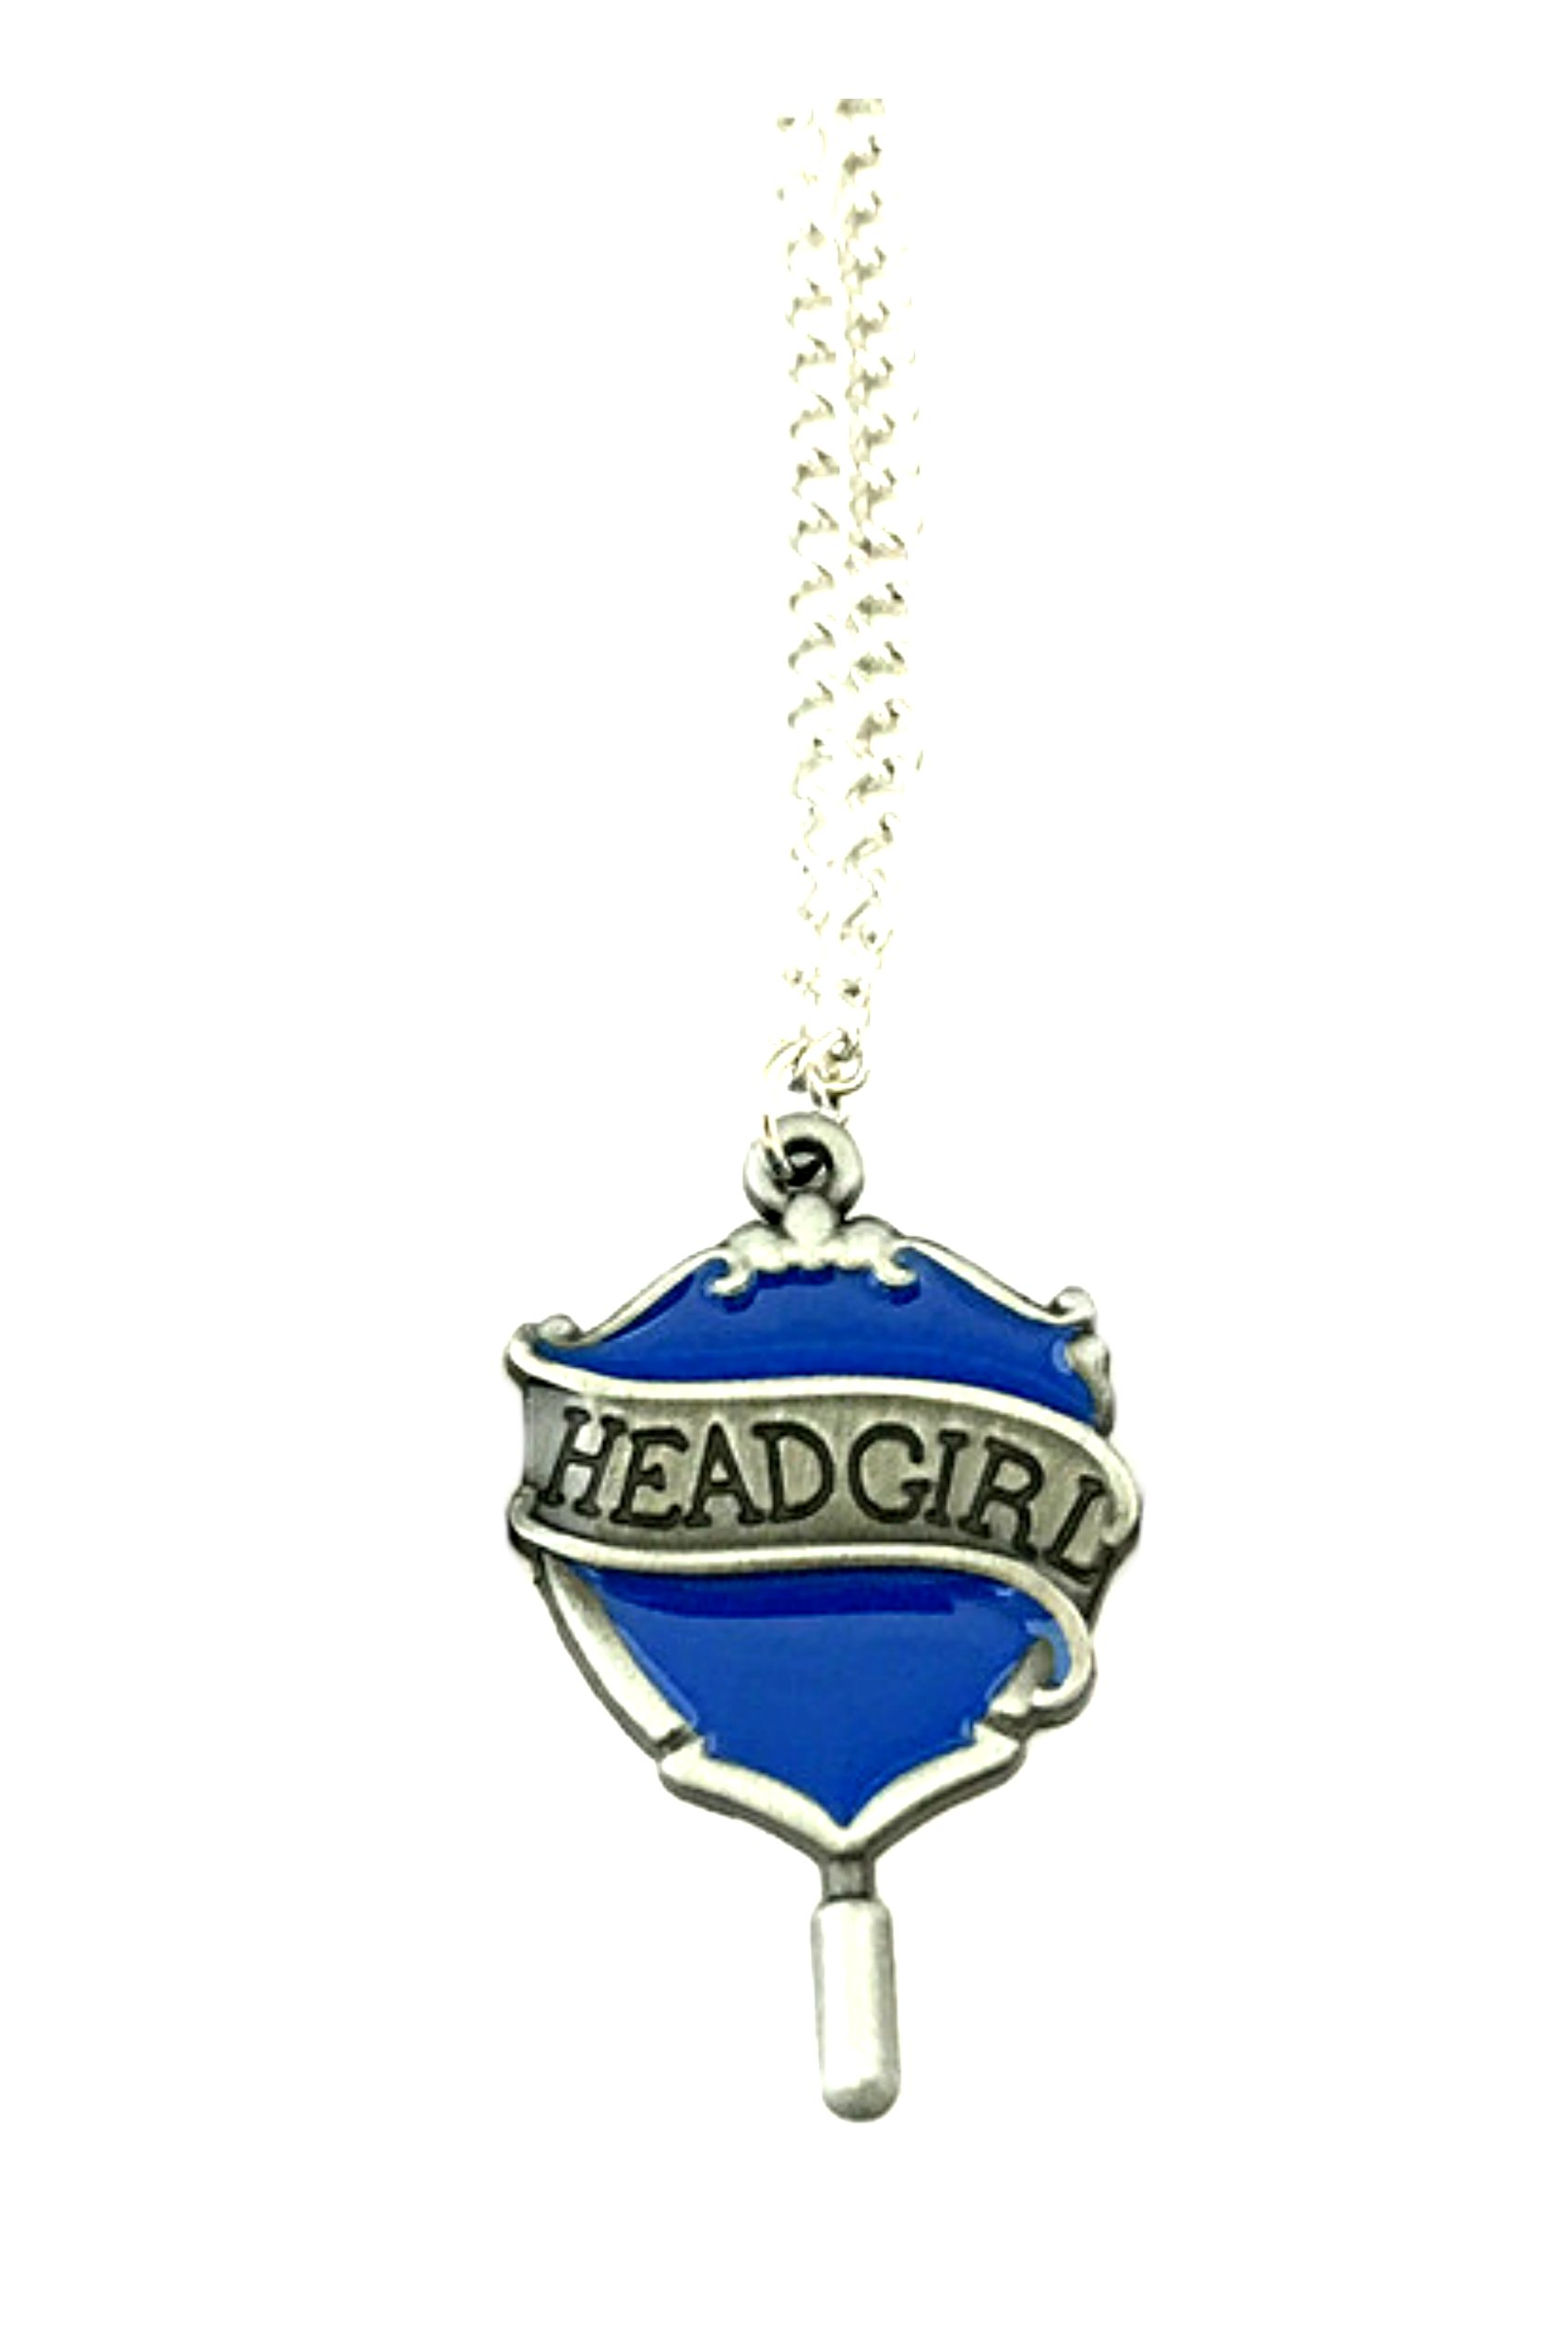 Superheroes Brand Harry Potter Pendant Necklace Movies Books Logo Golden Snitch Gryffindor Slytherin Ravenclaw Hufflepuff Crest Jewelry